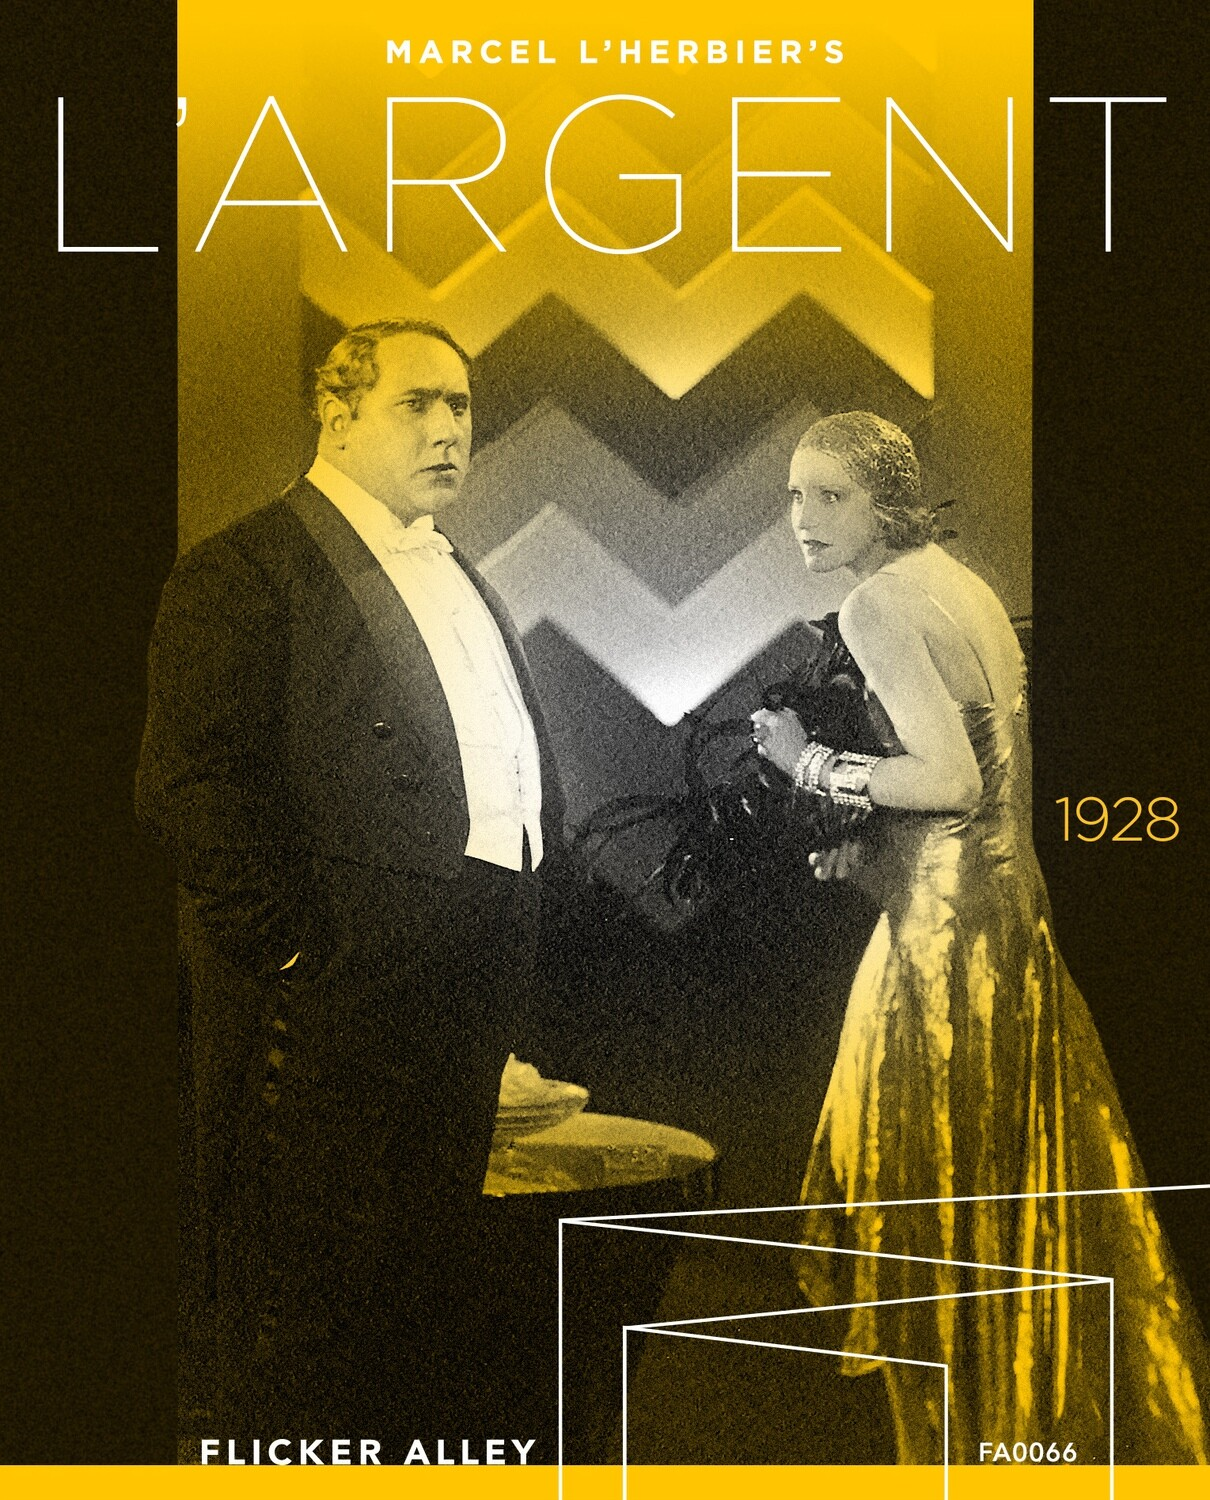 L'ARGENT cover.jpg